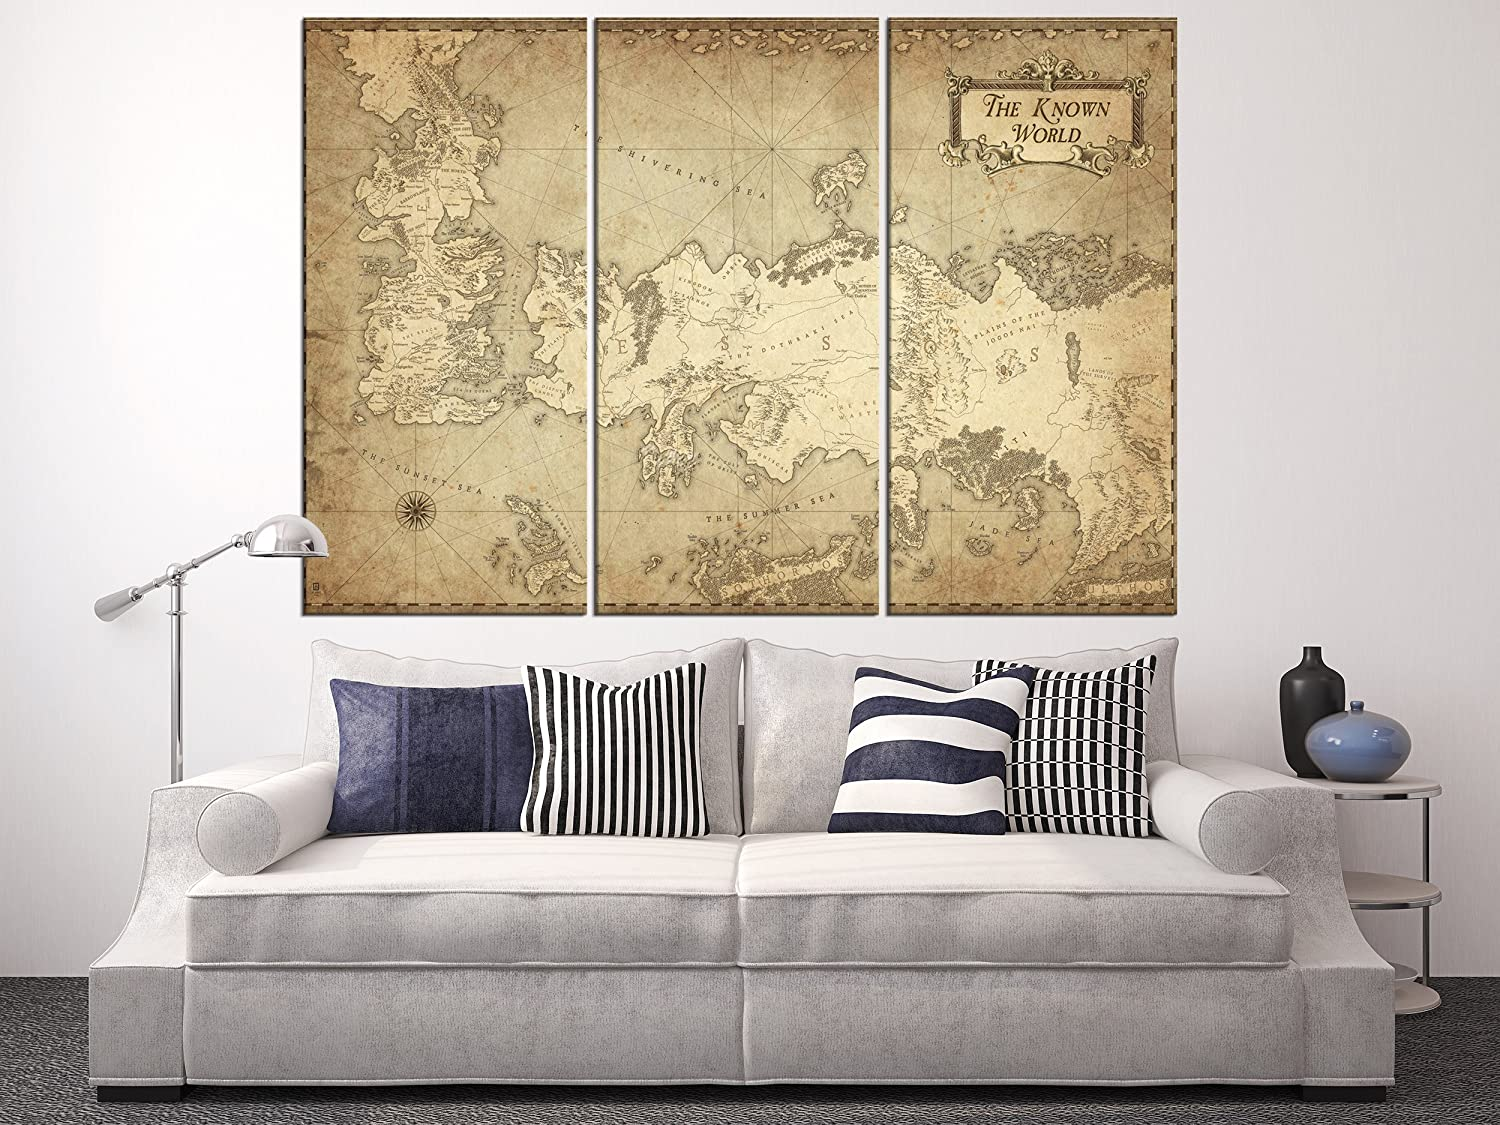 Amazon.com: The Game of Thrones Map Canvas Print, Map Wall ... on game of thrones review, game of thrones posters, game of thrones book, game of thrones winter, game of thrones diagram, game of thrones kit, game of thrones wildlings, game of thrones globe, game of thrones magazine, game of thrones win or die, game of thrones maps hbo, game of thrones garden, game of thrones war, game of thrones pins, game of thrones maps pdf, game of thrones castles, game of thrones hardcover, game of thrones white walkers, game of thrones table, game of thrones letter,